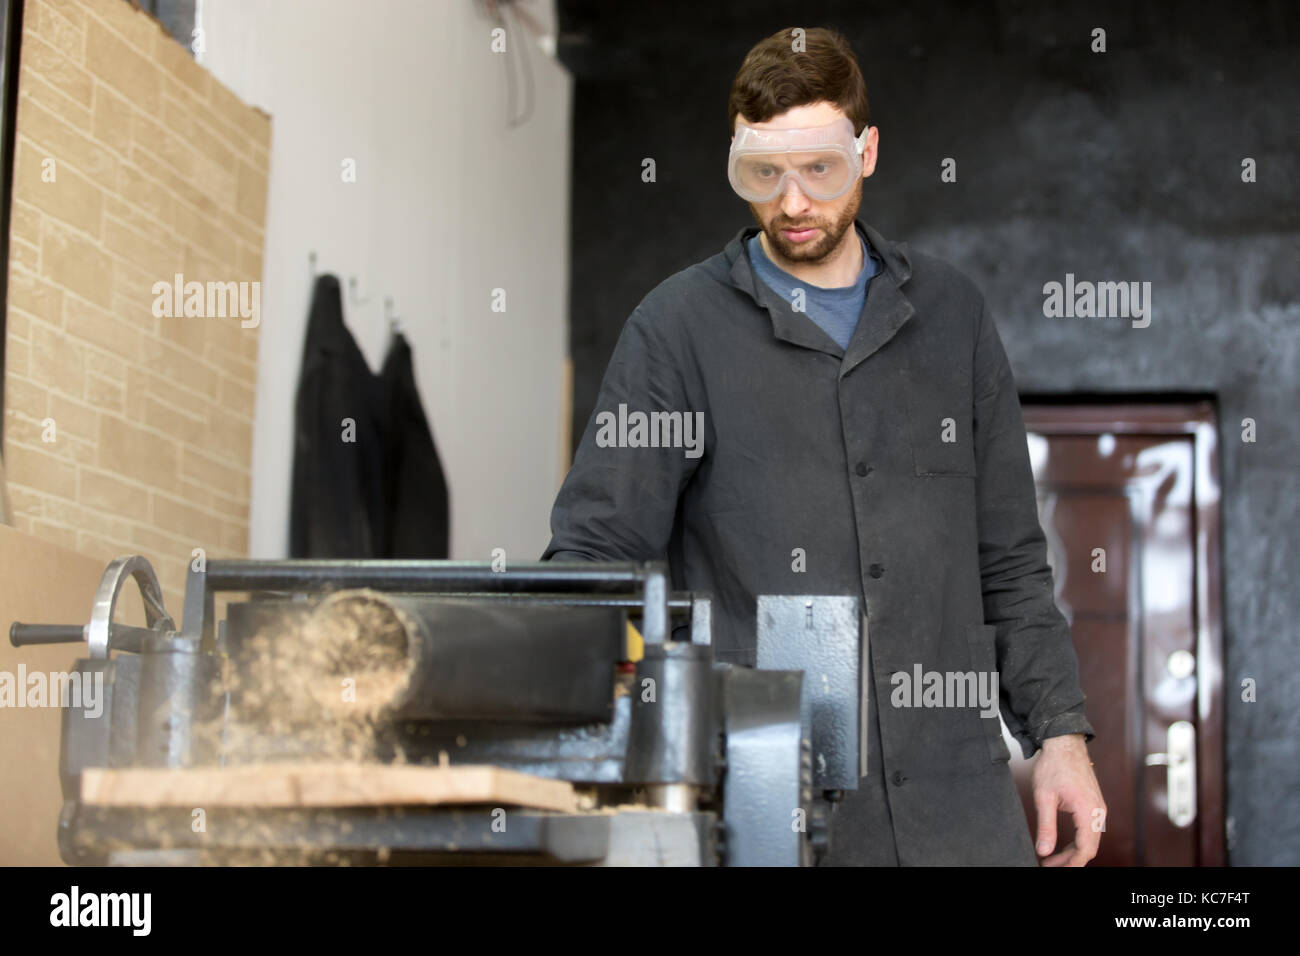 Carpenter in safety glasses works on machine tool - Stock Image